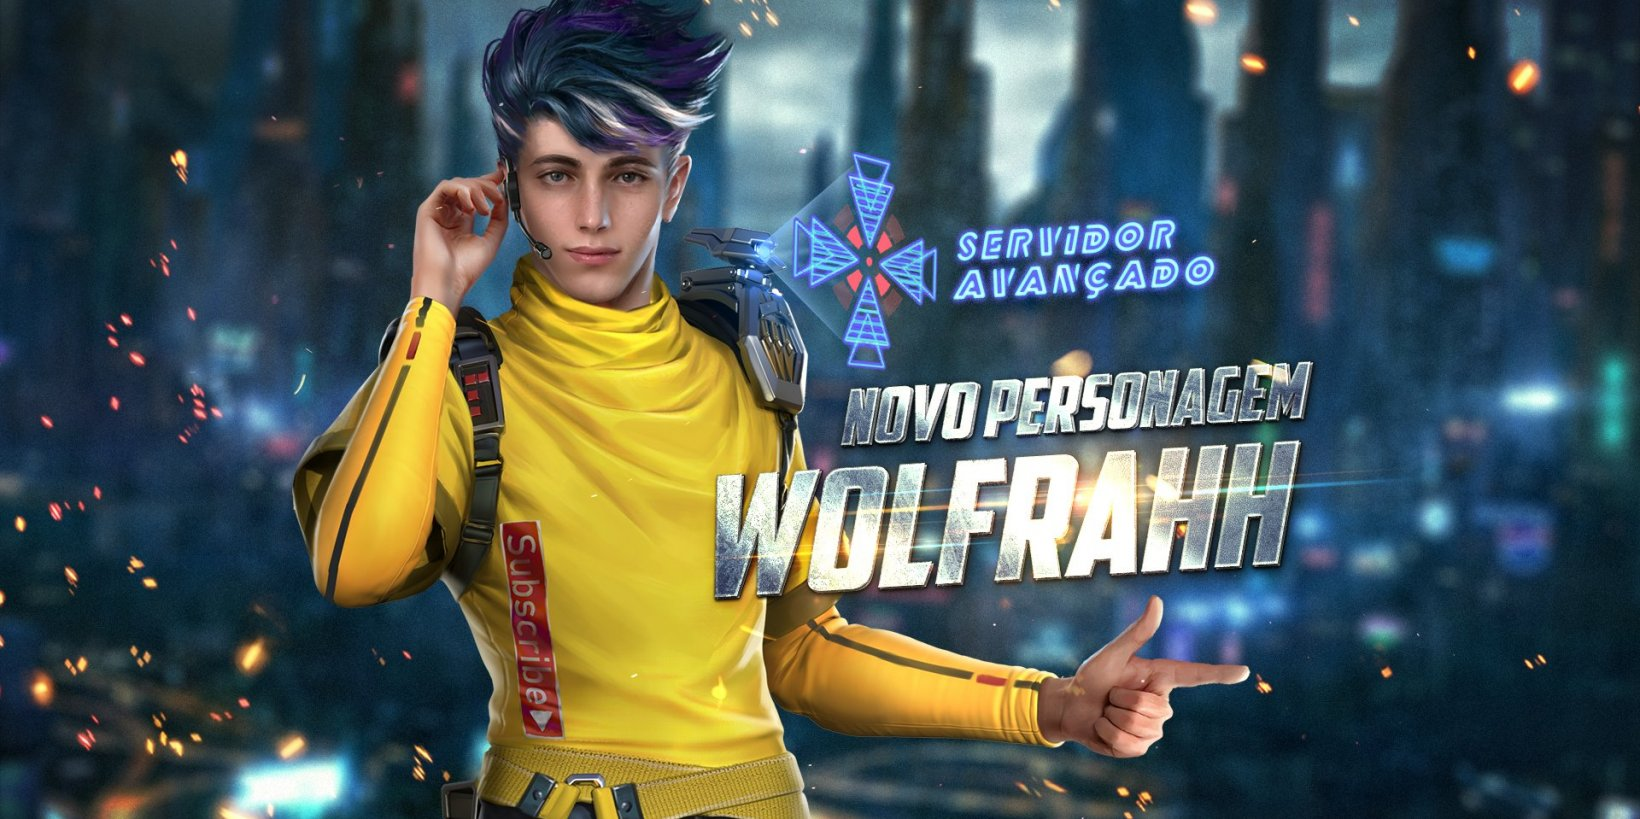 [UPDATED] Full list of EVERY character in Garena Free Fire: Rampage